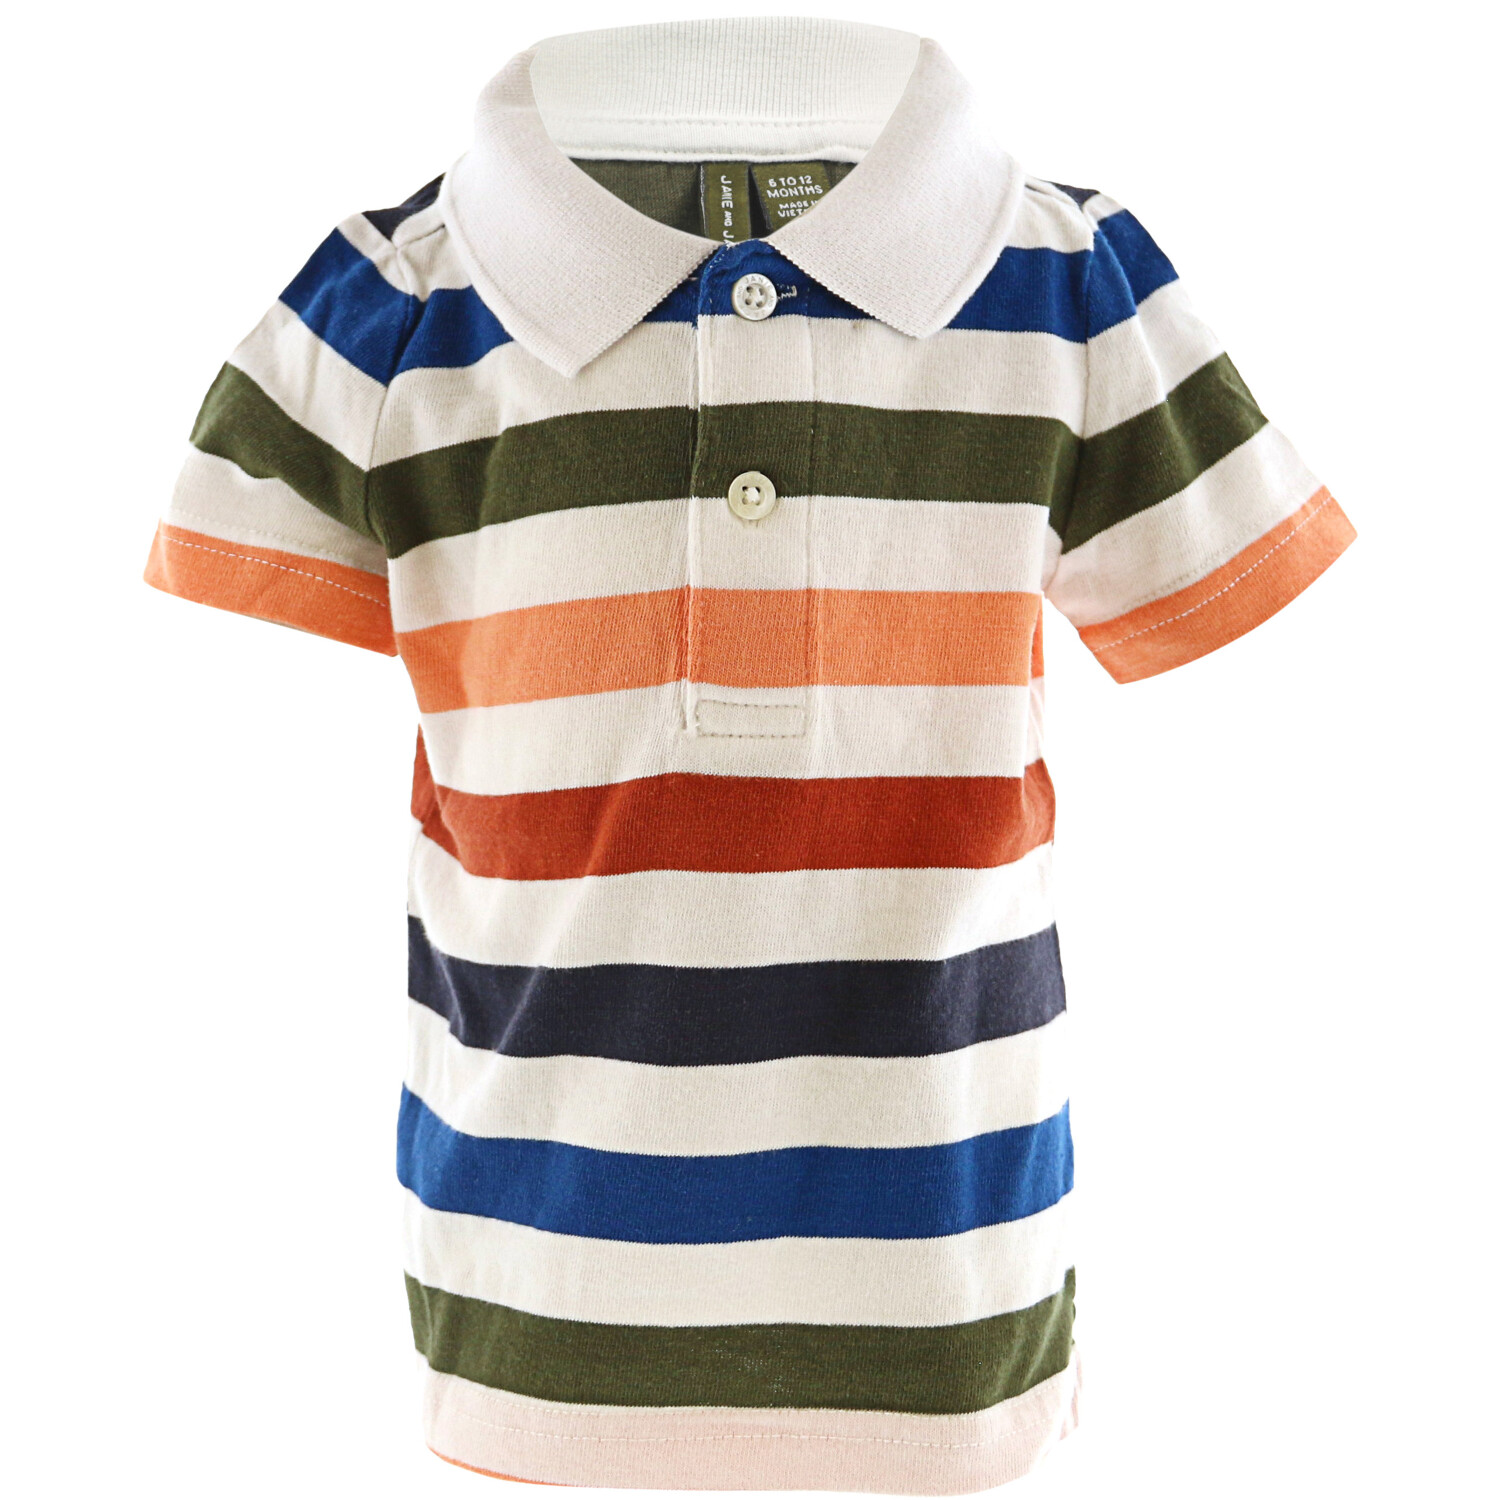 Janie And Jack Boy's Striped Polo - 3-6 Months - White / Green / Blue / Red